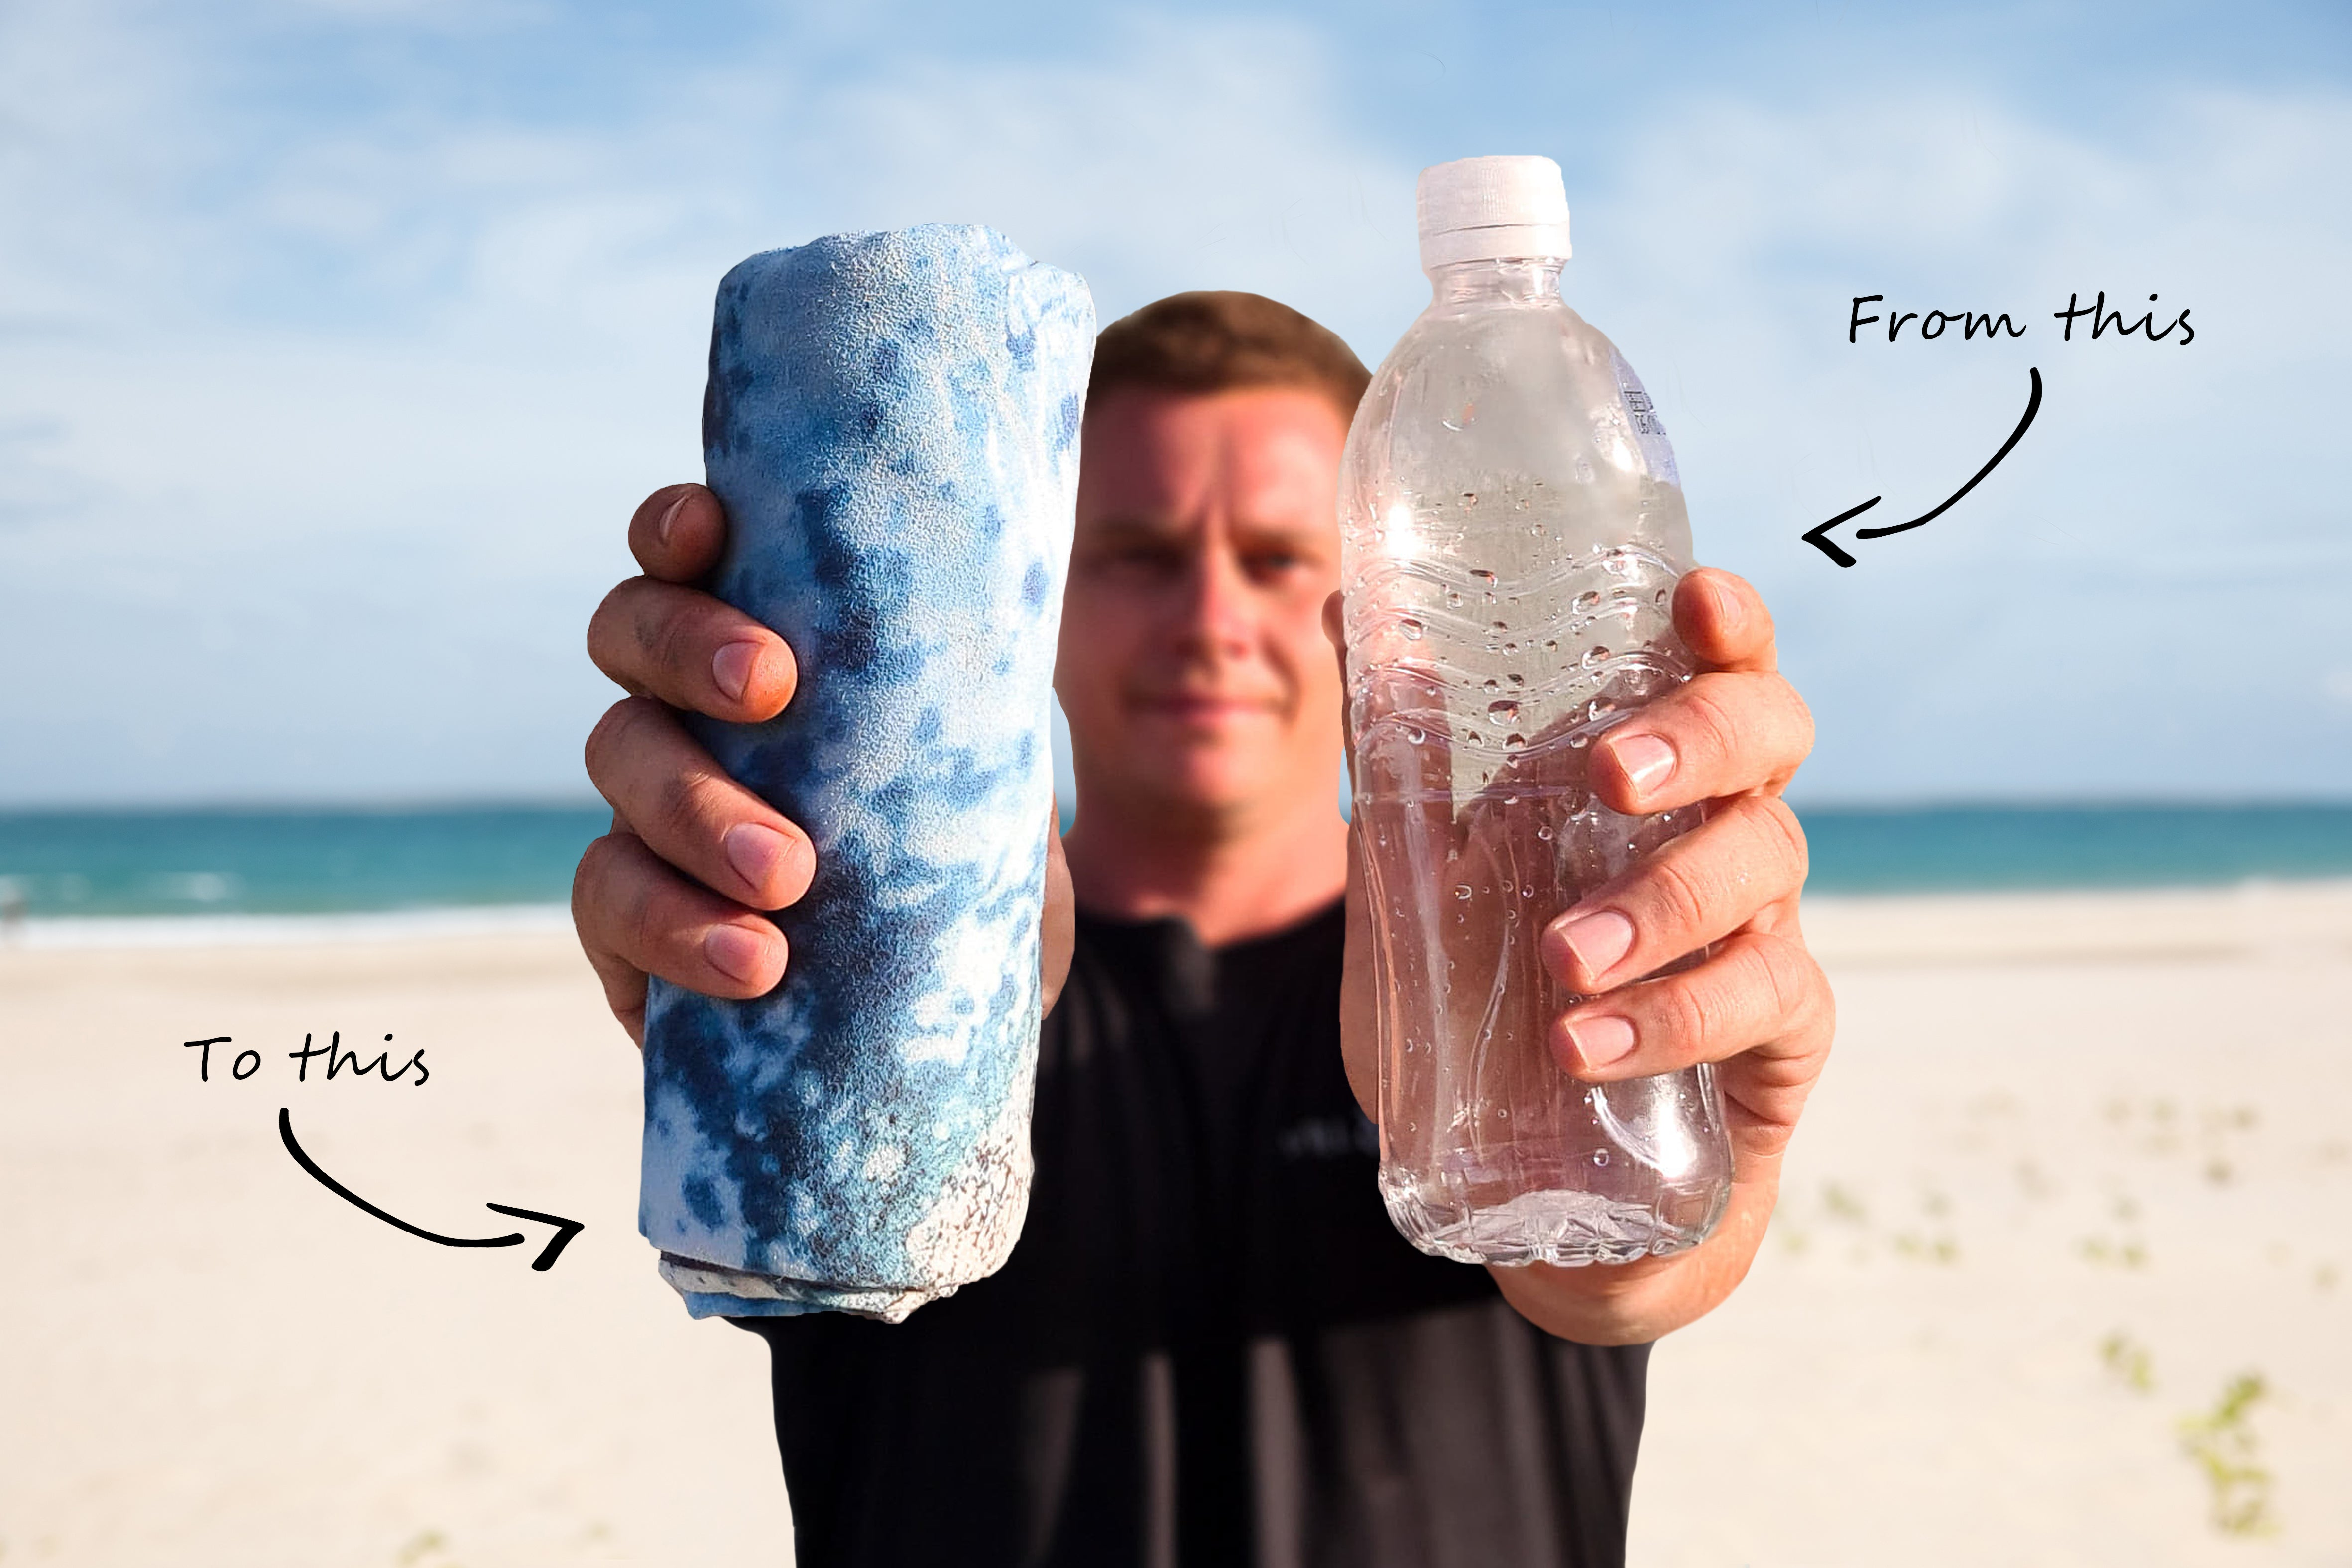 Eco Friendly Will and Wind Travel Beach Towels made from recycled materials